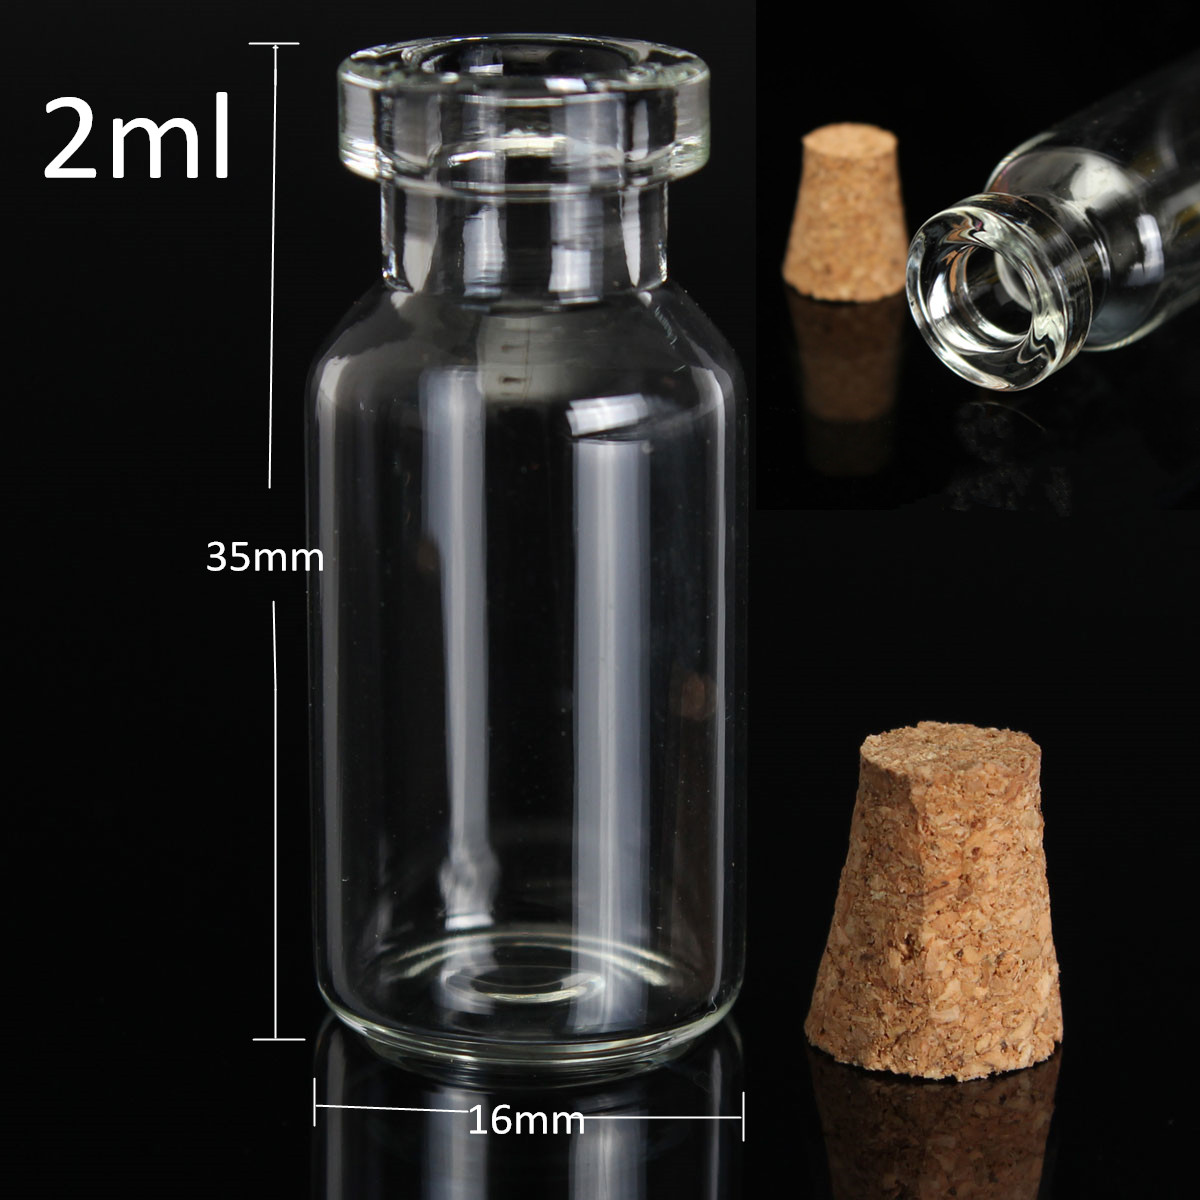 1 50 st ck glasflaschen 2 12ml leere glas apothekerflasche lik r flasche korken ebay. Black Bedroom Furniture Sets. Home Design Ideas